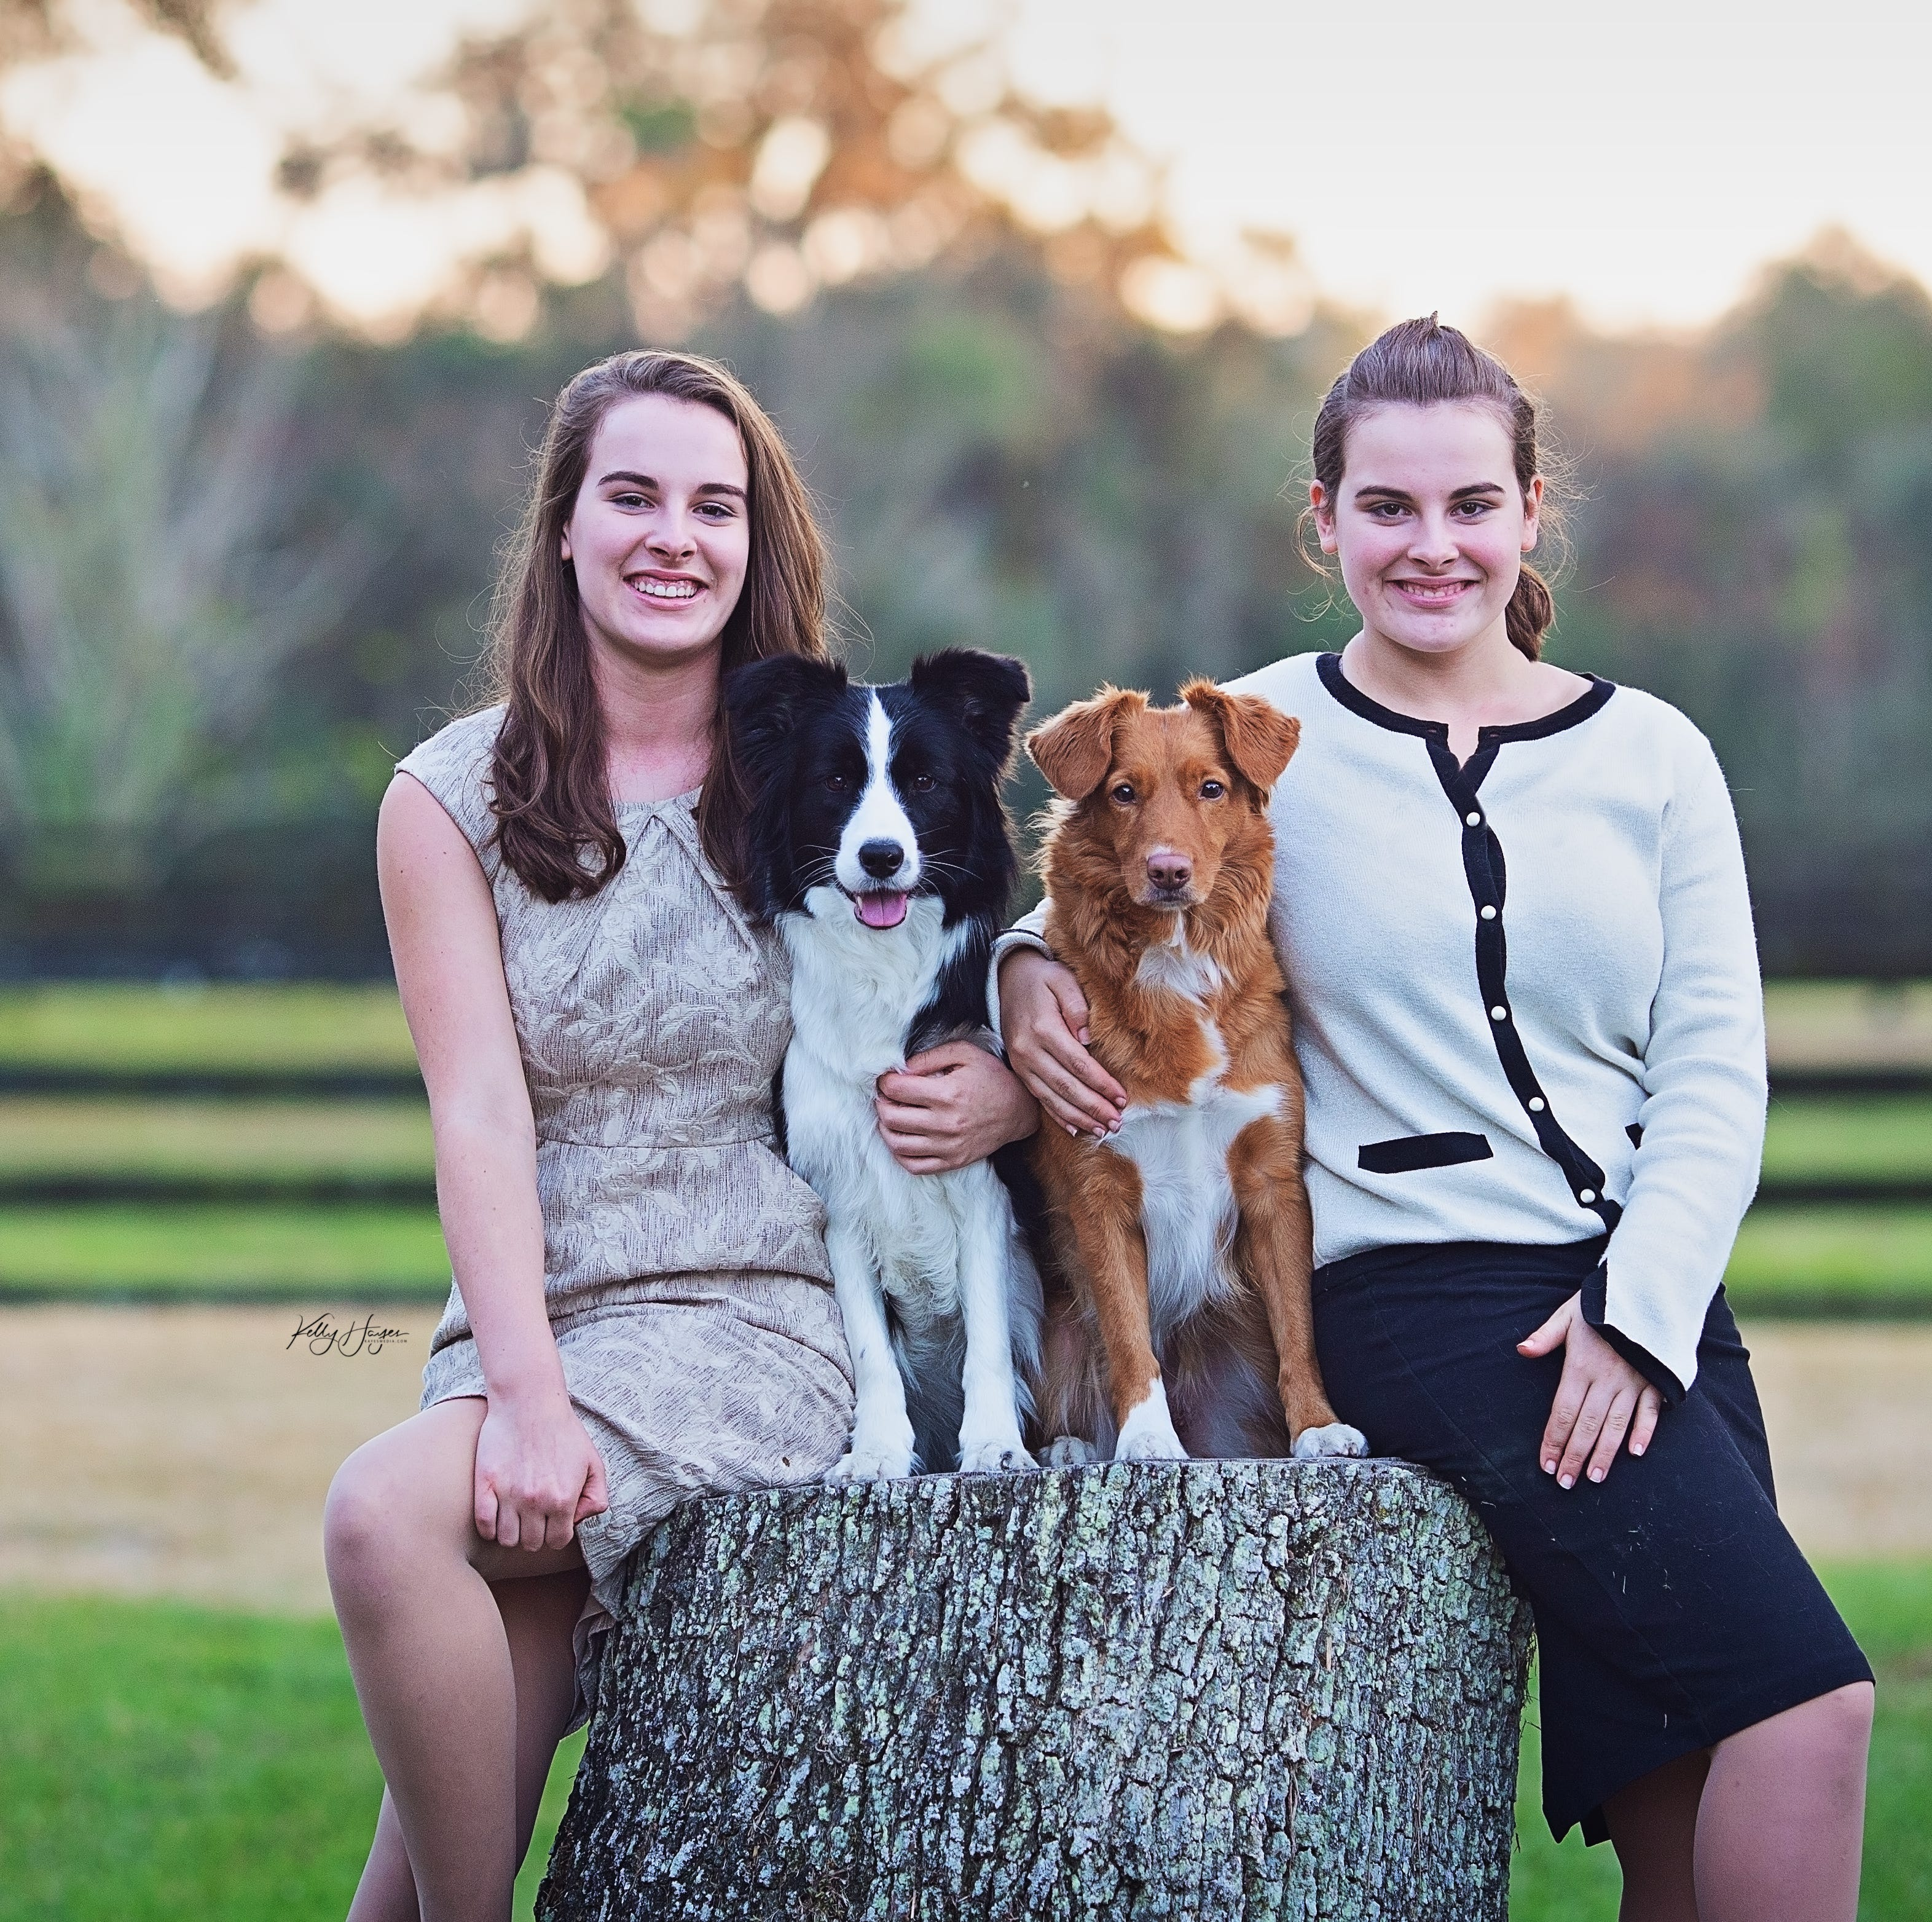 Doggone fun: Mims twins among AKC's top junior handlers to show at National Championship